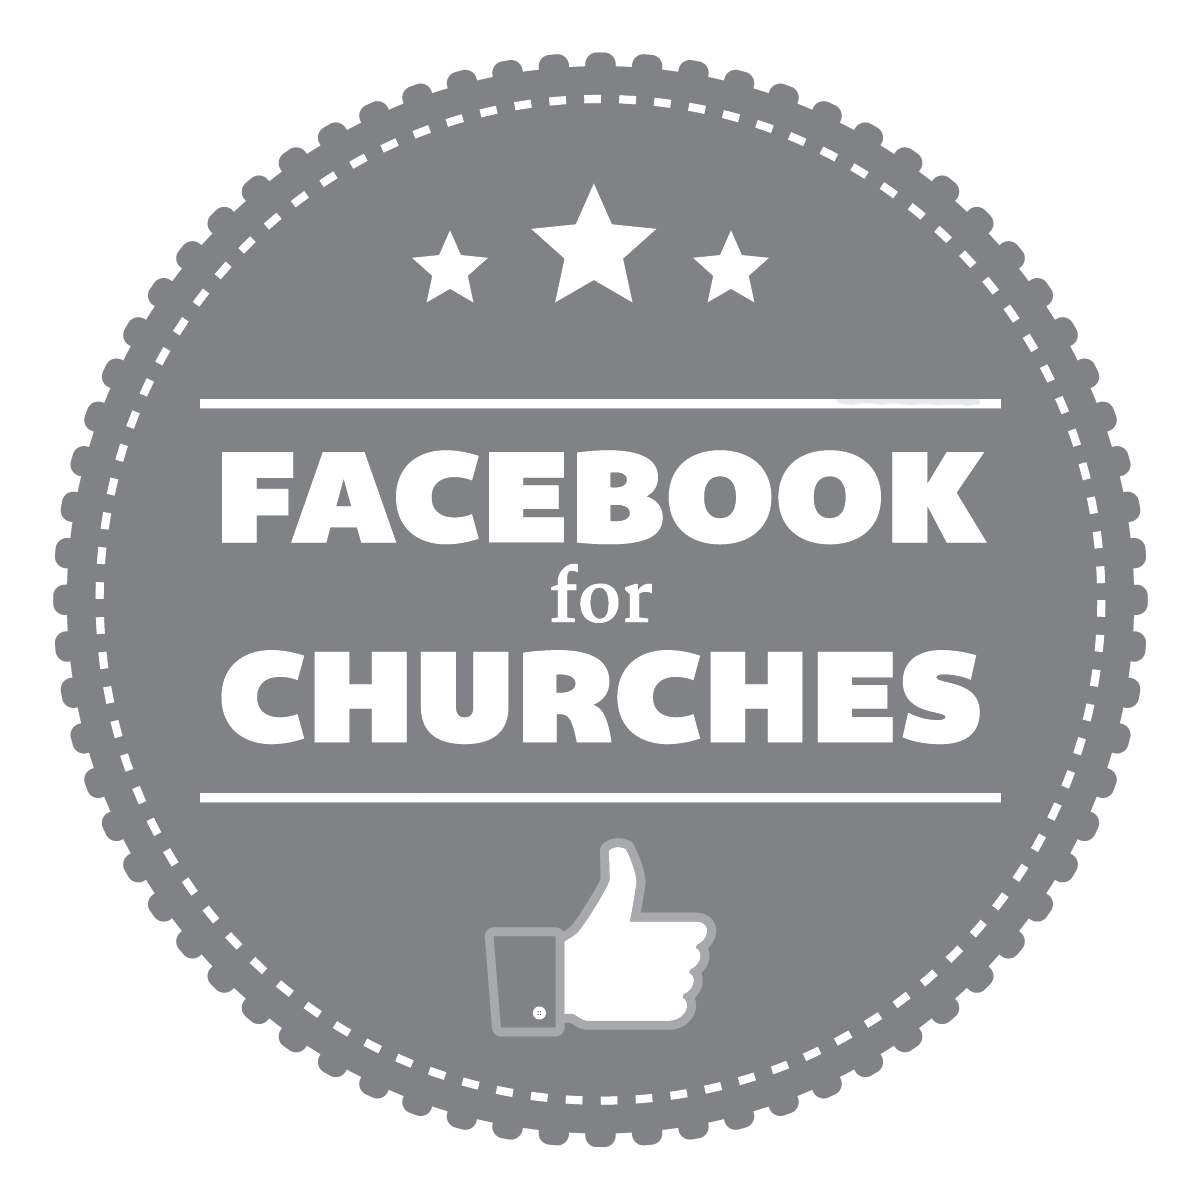 FB-For-Churches-Seal-1.png